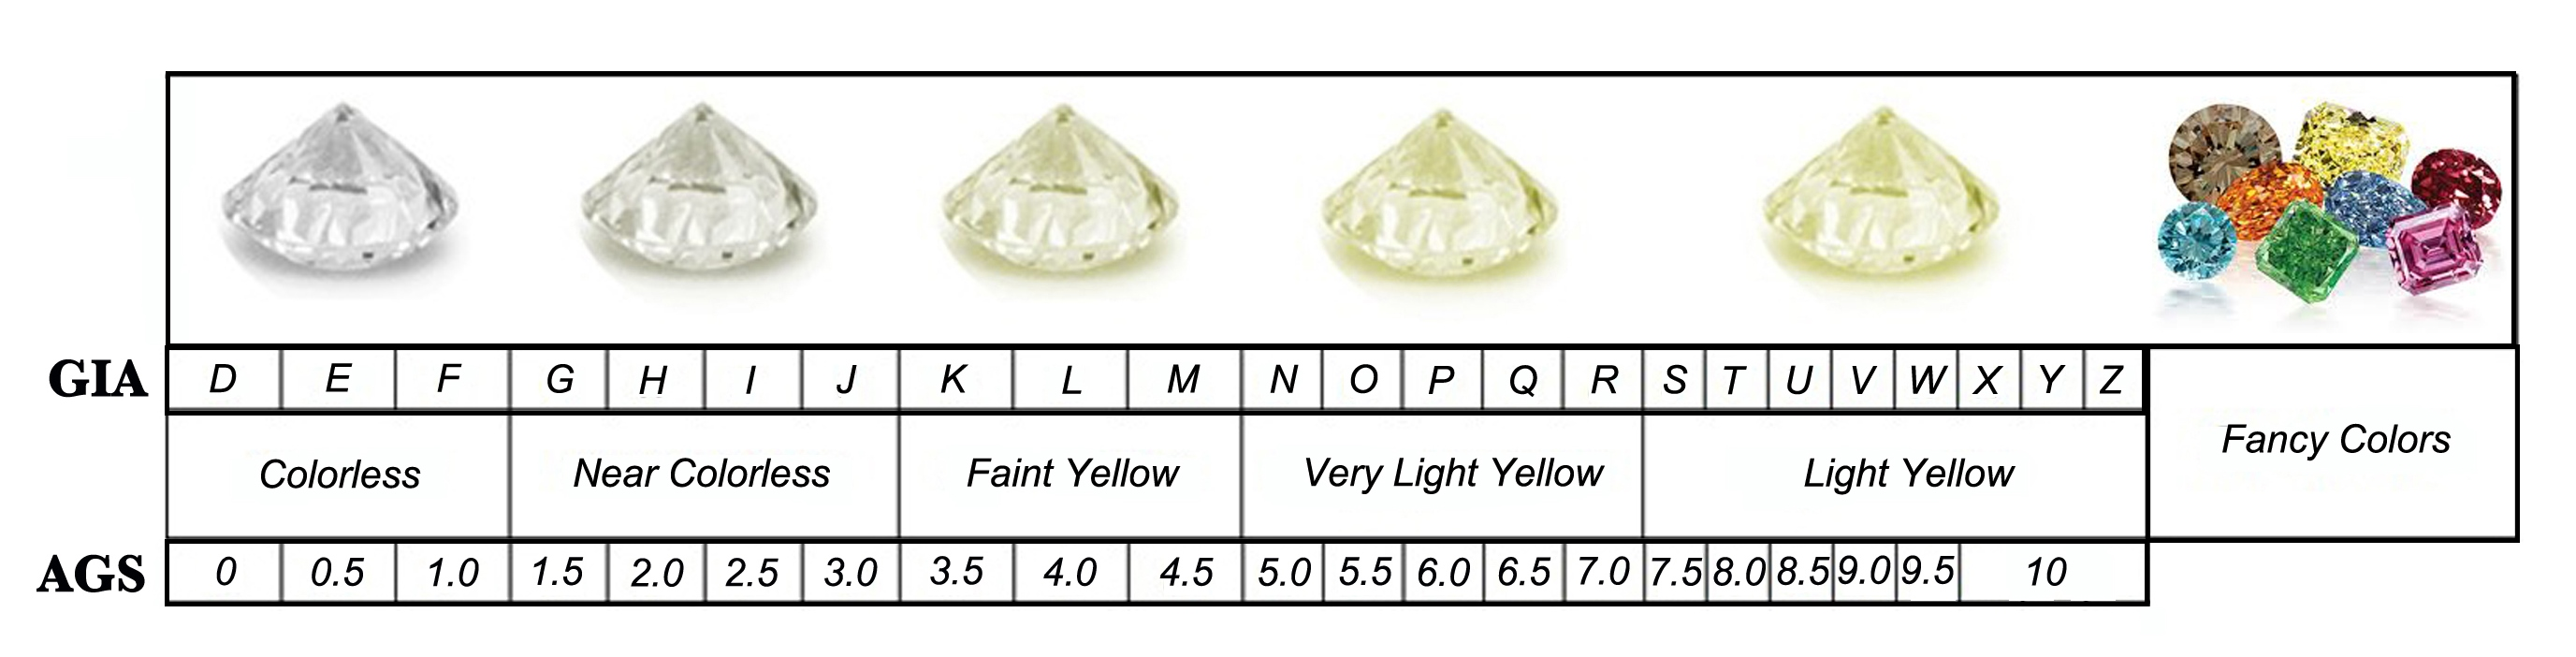 guide to blog archives quick a grading sarine diamond basics